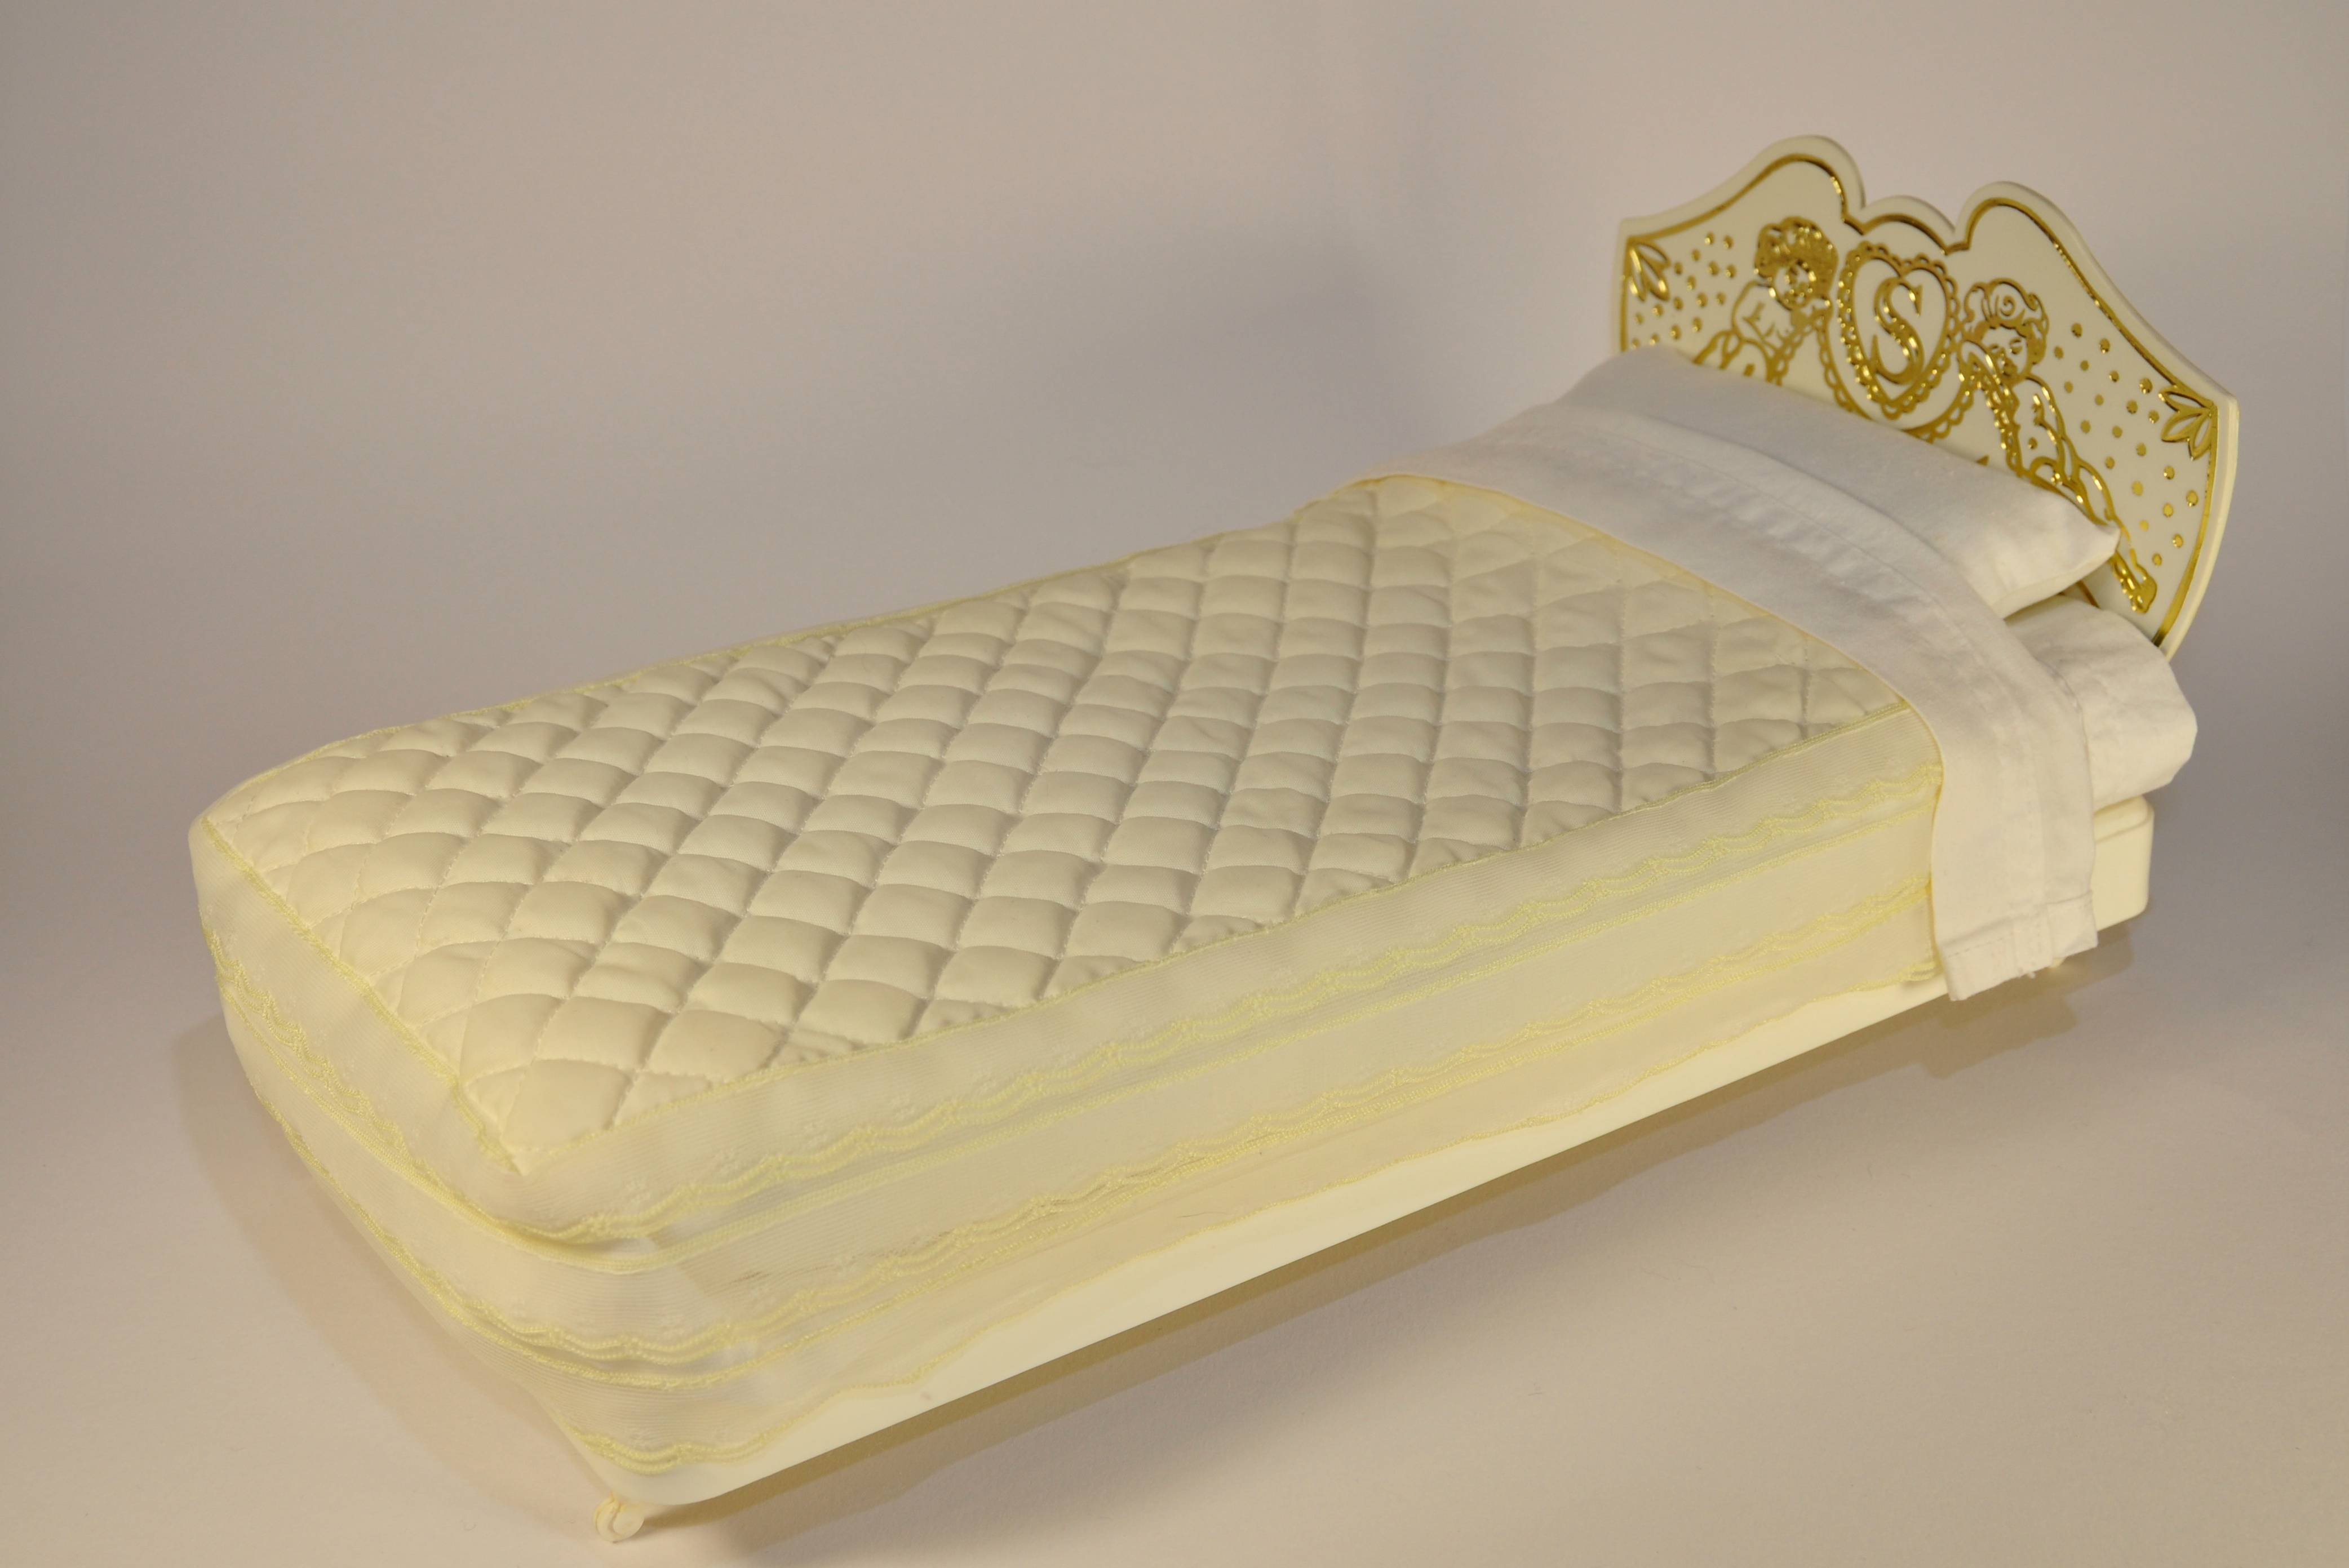 Bed - later version